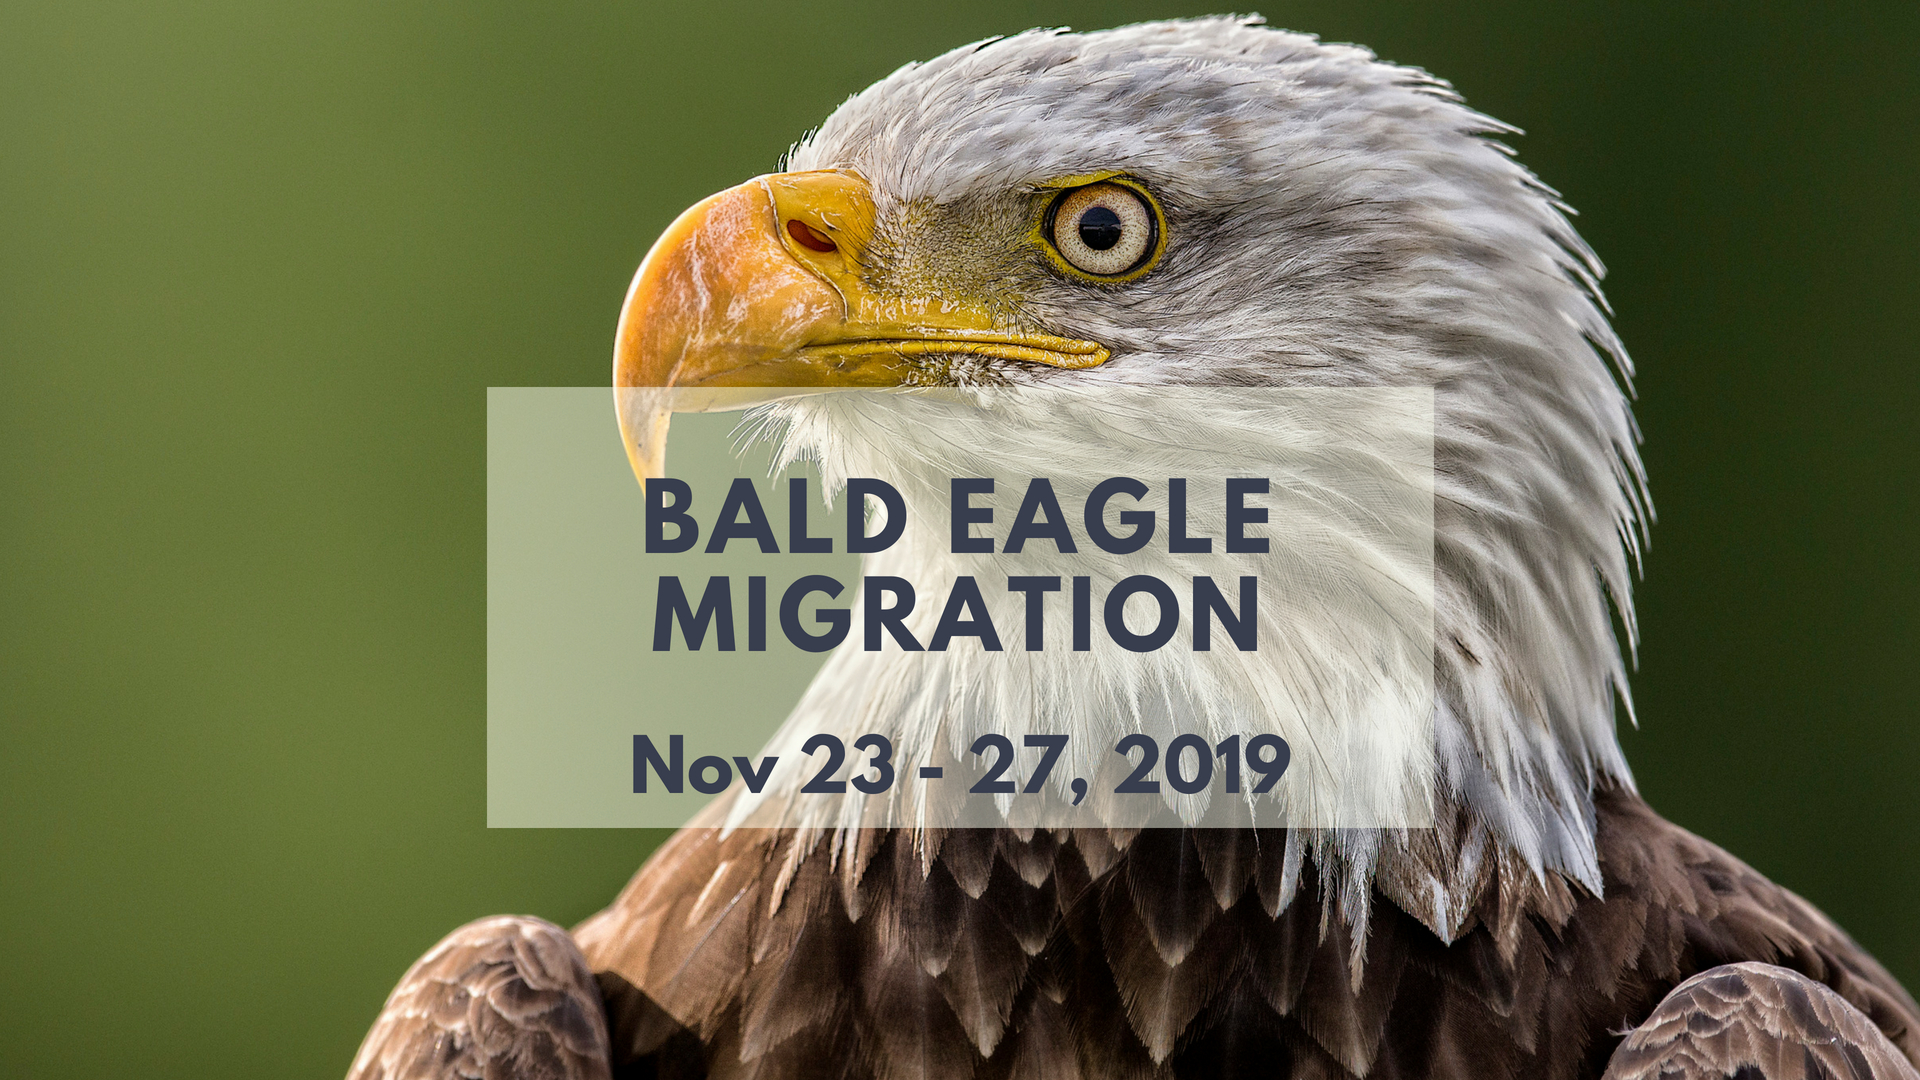 BC Bald Eagle Migration Photo Tour - North of 49 Photography